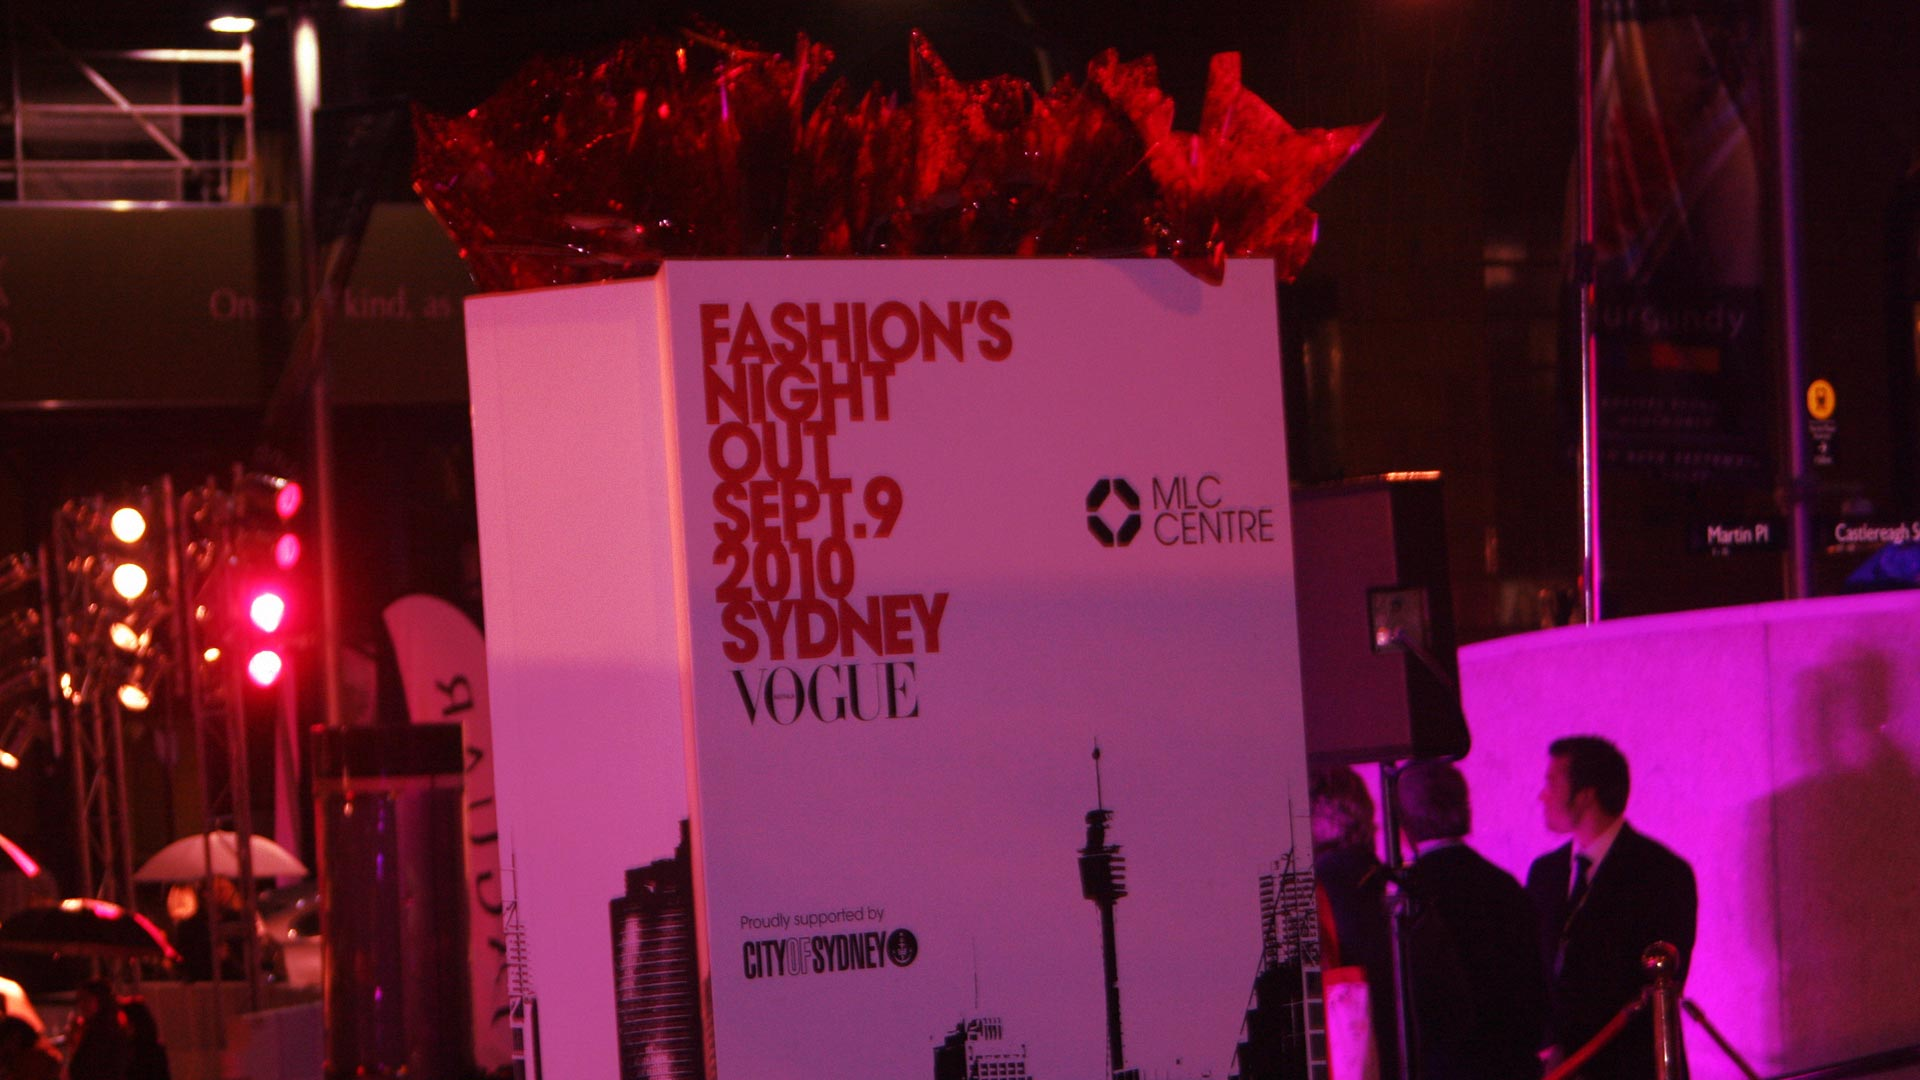 Vogue's Fashion's Night Out - MLC Centre